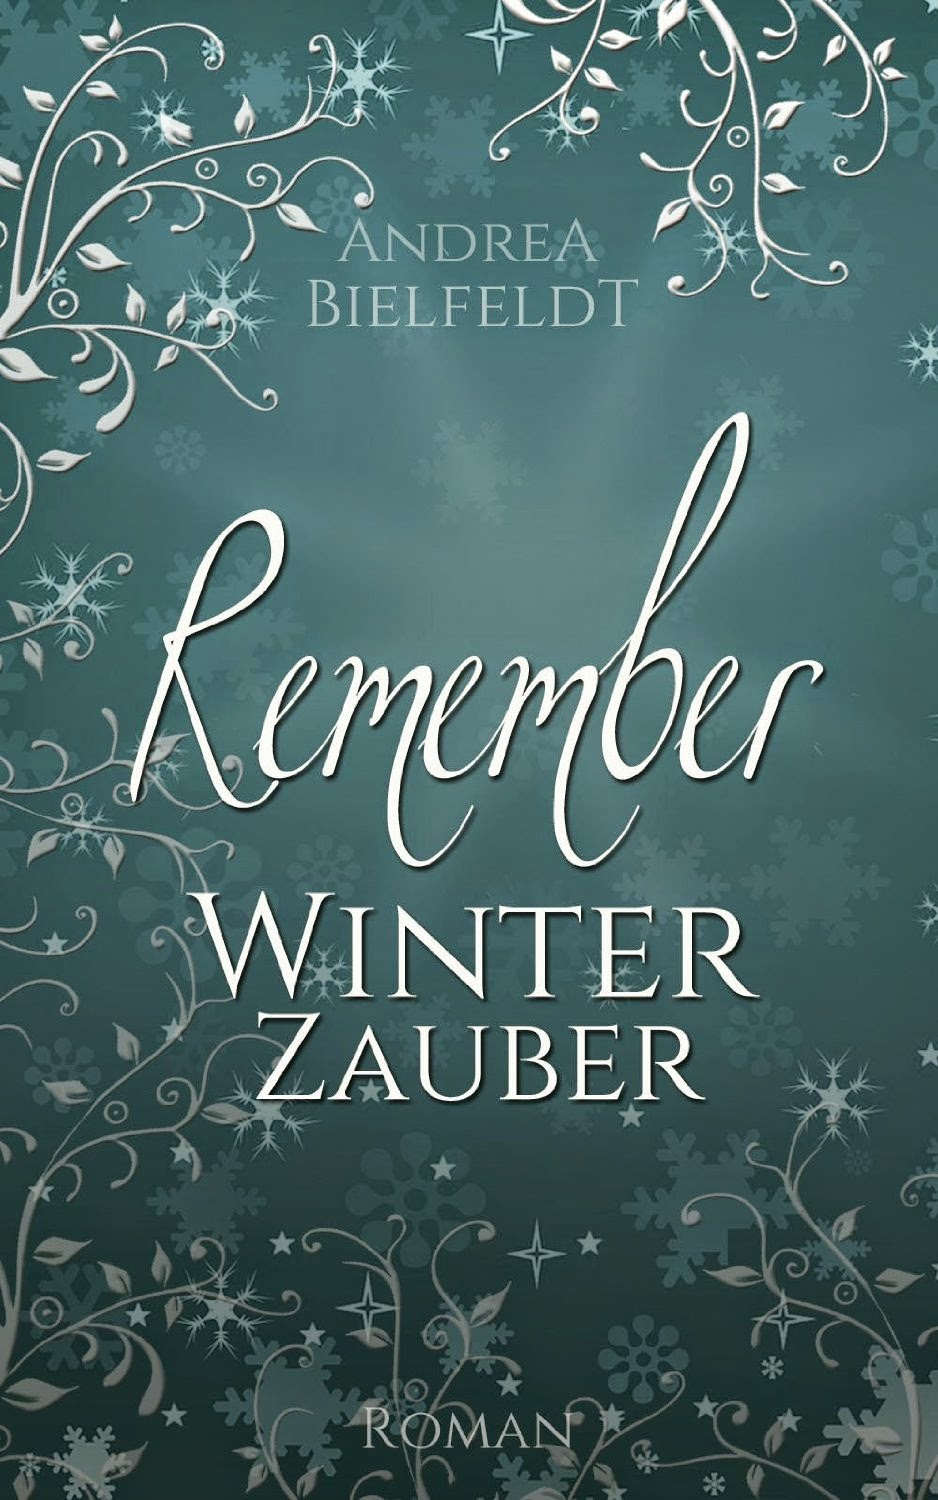 http://www.amazon.de/REMEMBER-Winterzauber-Andrea-Bielfeldt-ebook/dp/B00R9QF5TE/ref=sr_1_1_twi_1?ie=UTF8&qid=1421507717&sr=8-1&keywords=remember+winterzauber